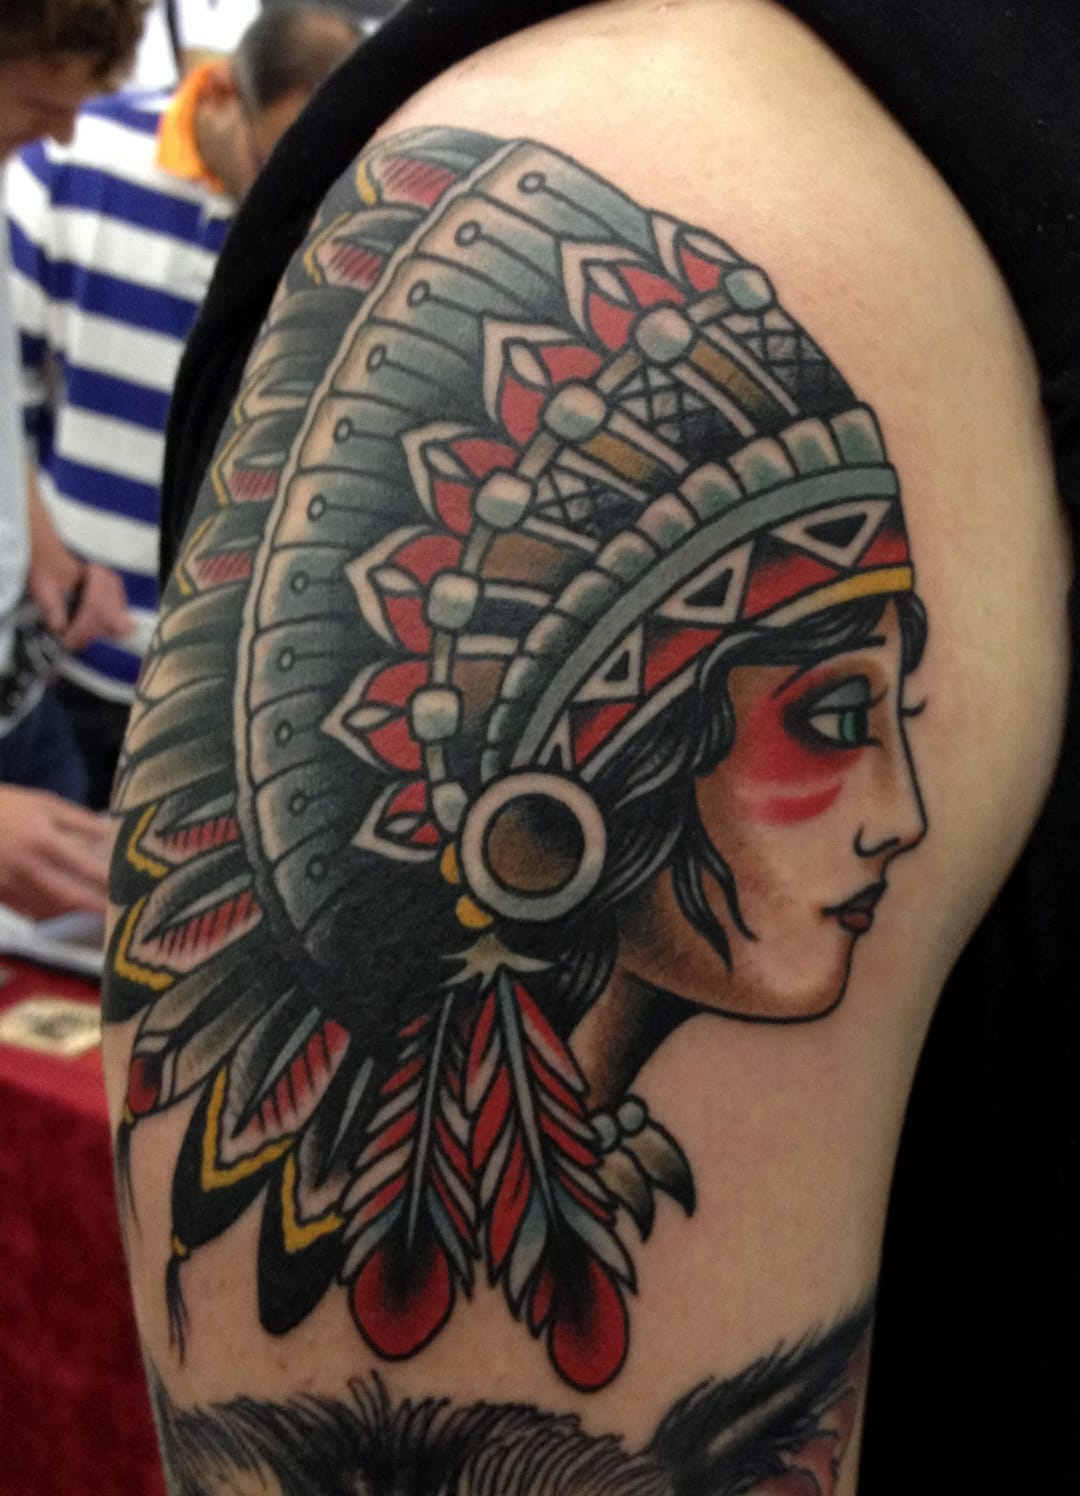 Awesome color selection on this tattoo.